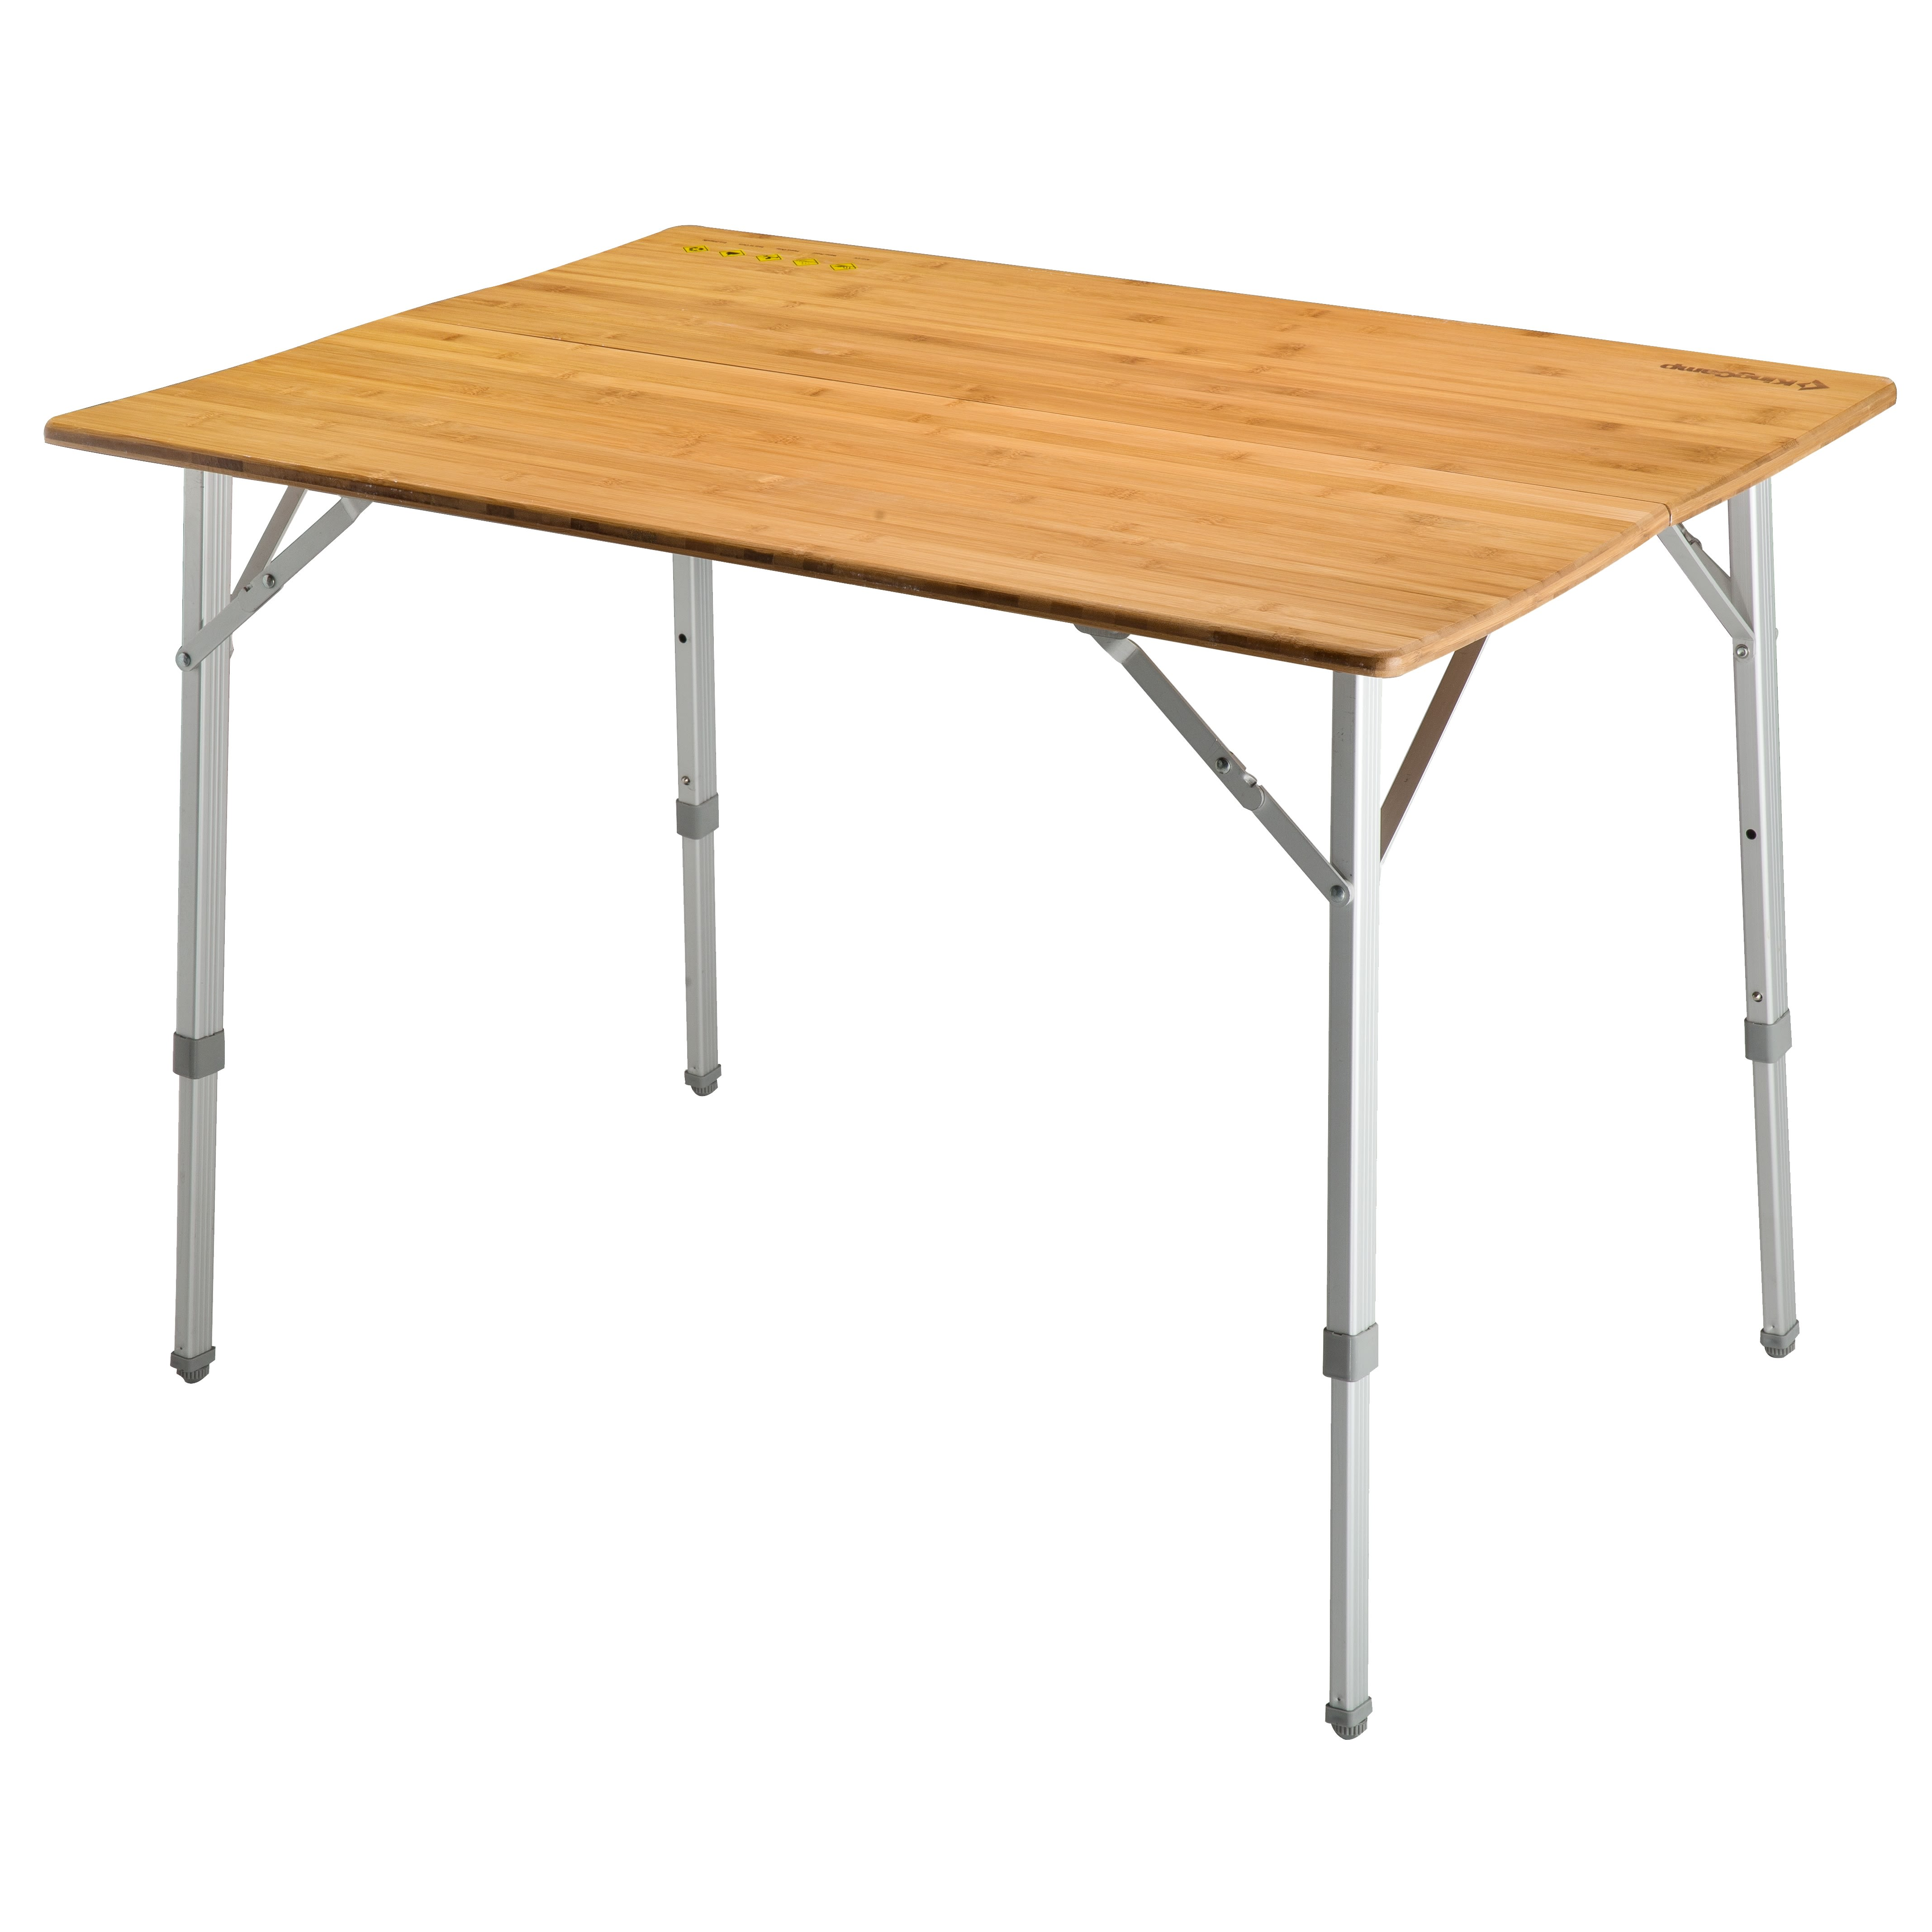 Buy Kingcamp Bamboo Folding Table from Outnorth